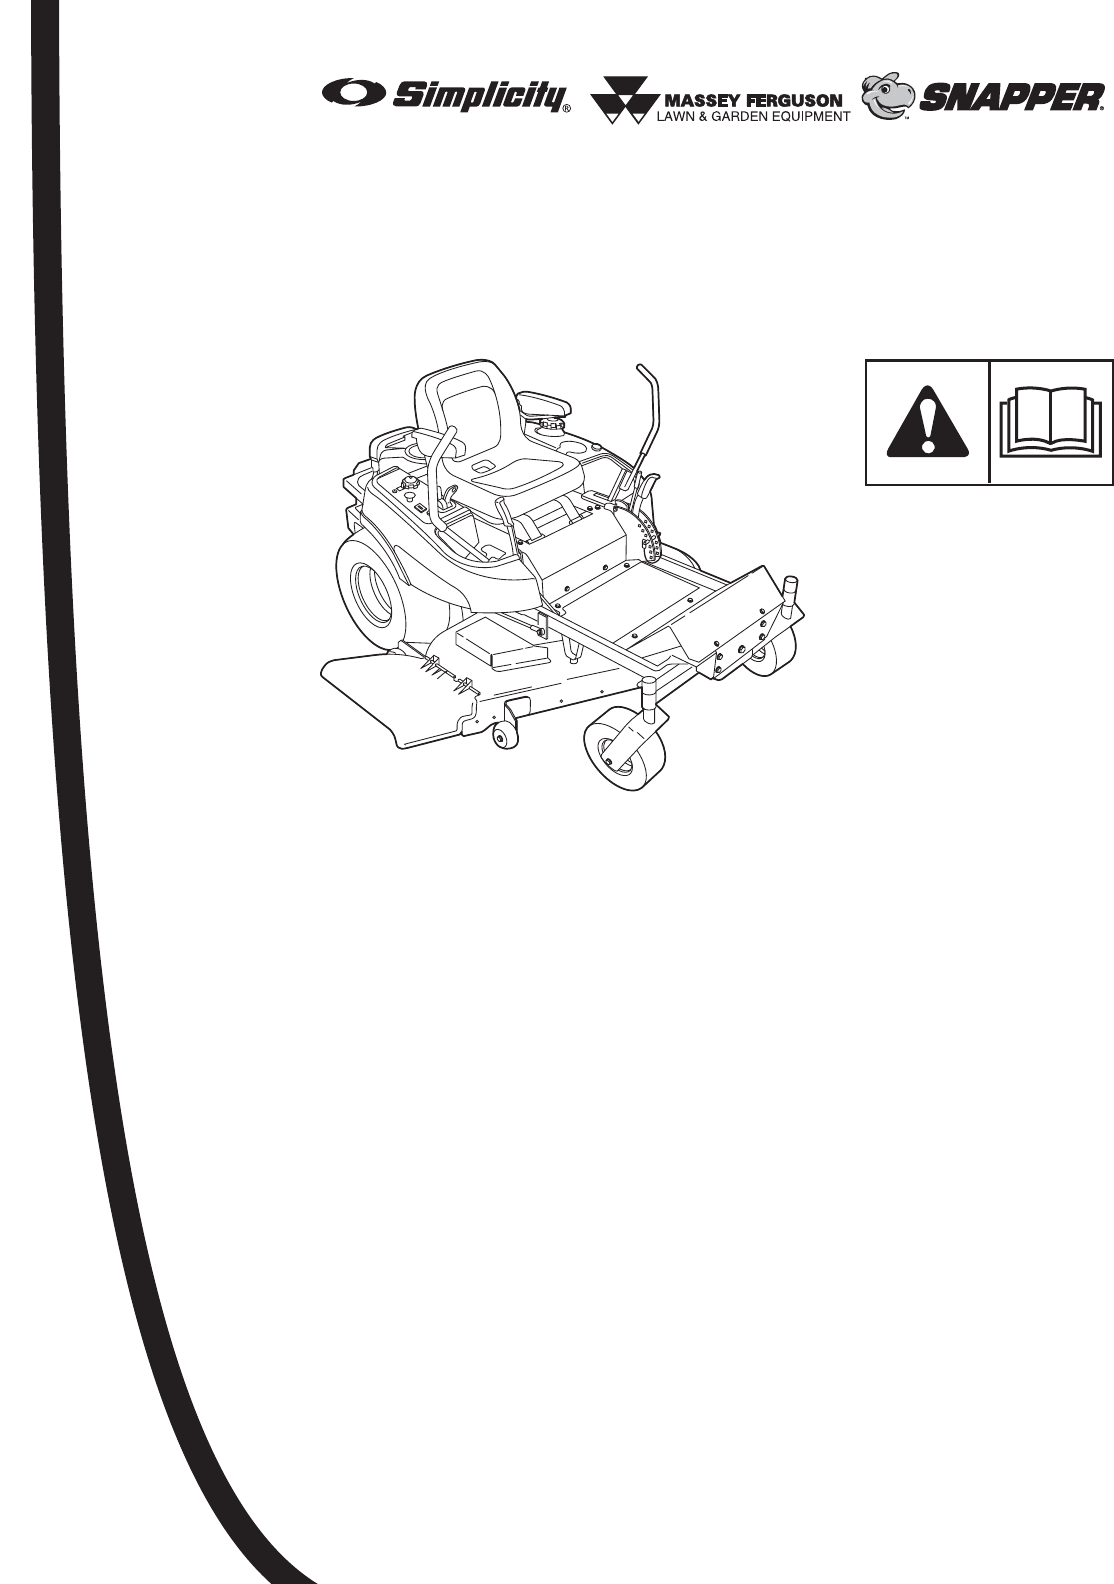 Briggs & Stratton Lawn Mower 355Z User Guide